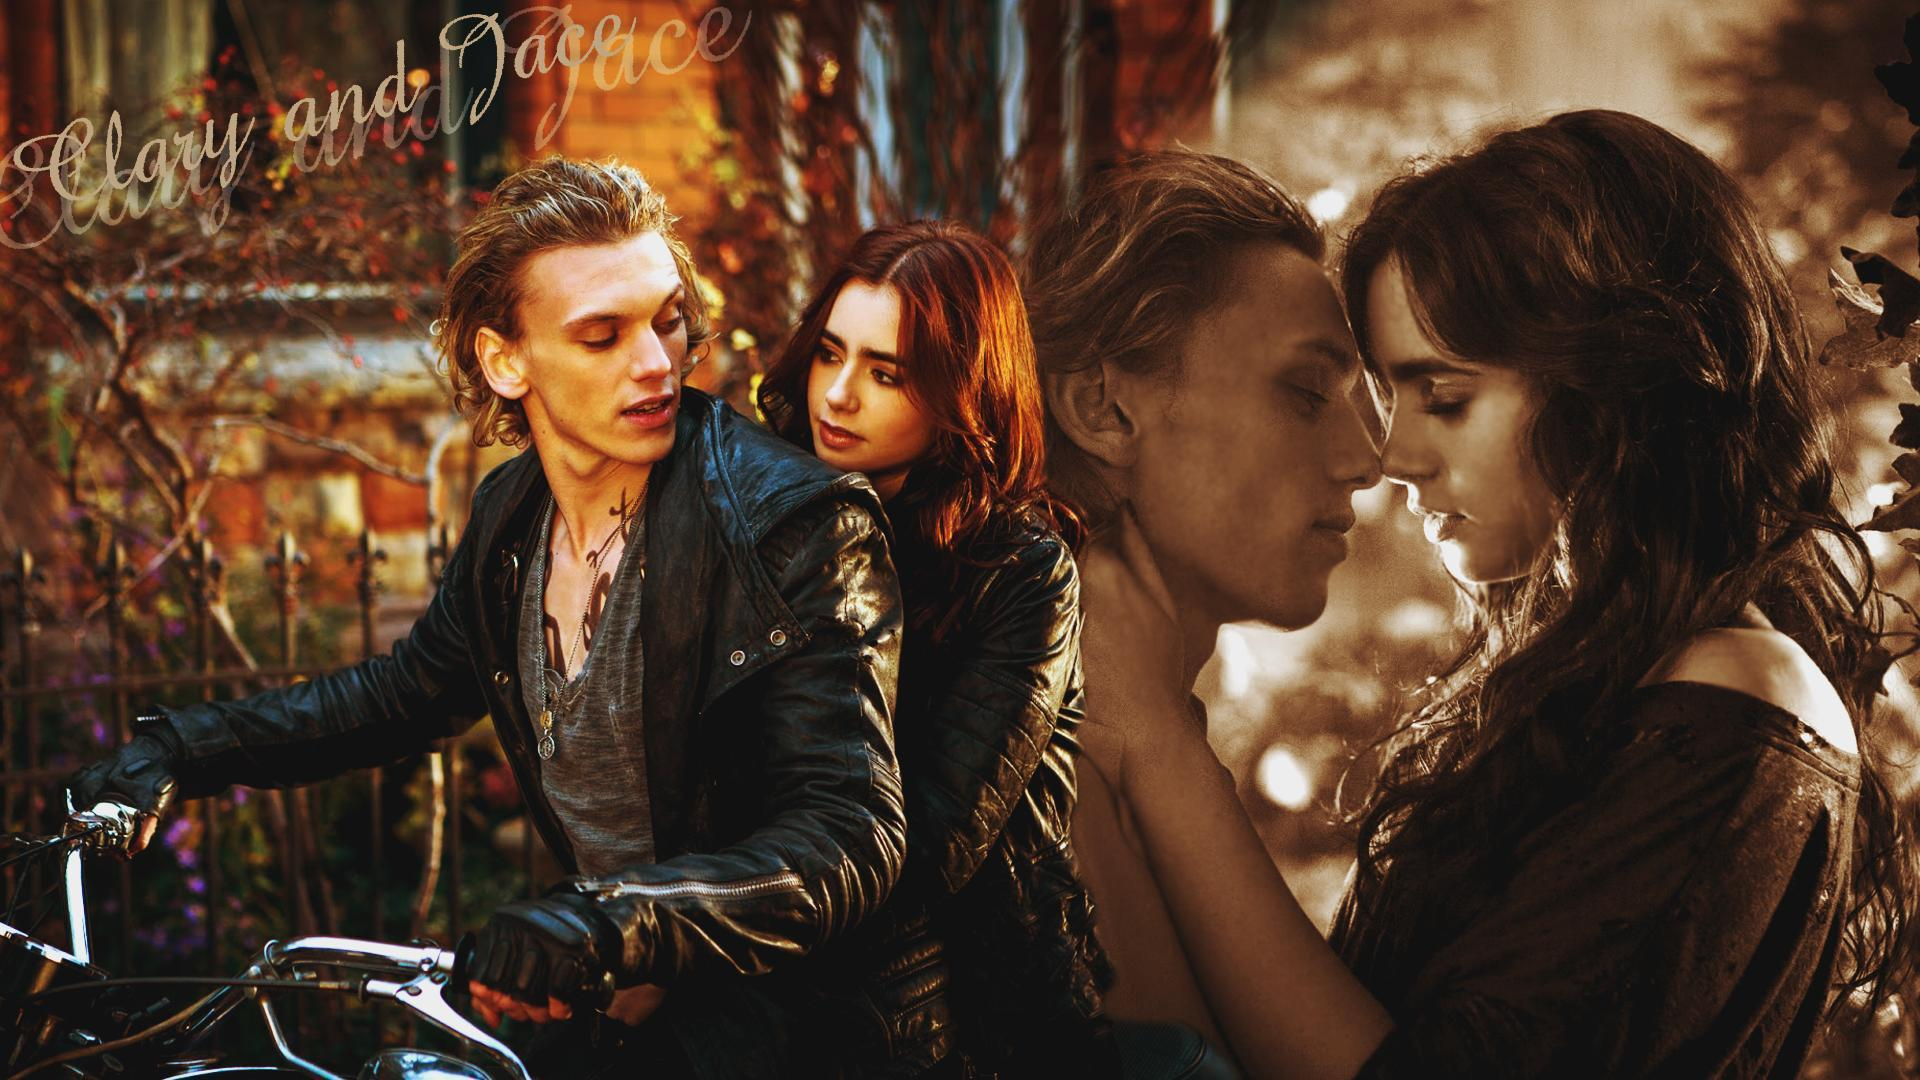 Shadowhunters Libros Mortal Instruments Wallpapers Wallpaper Cave